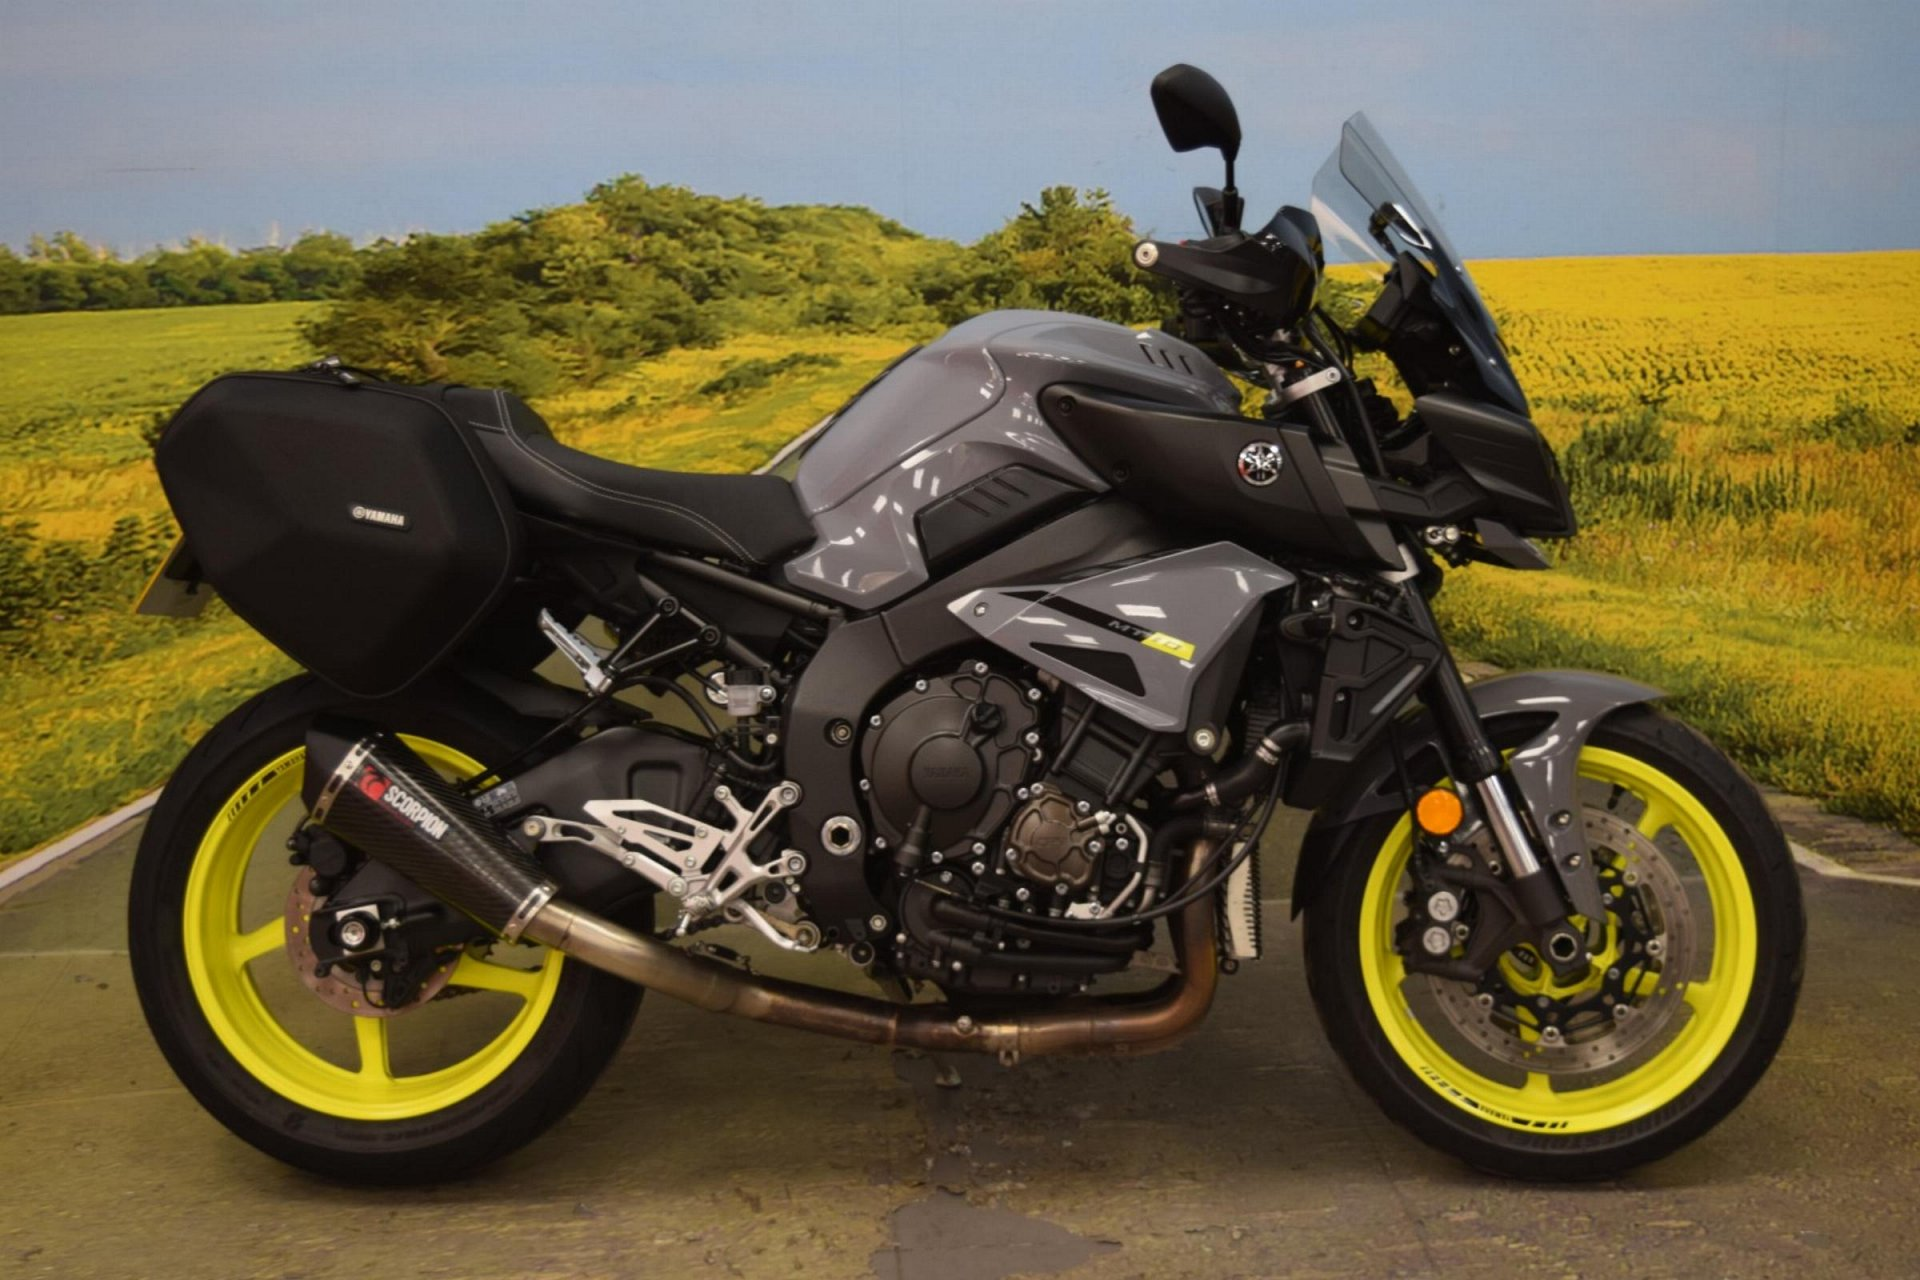 2018 Yamaha MT 10 Touring for sale in Staffordshire